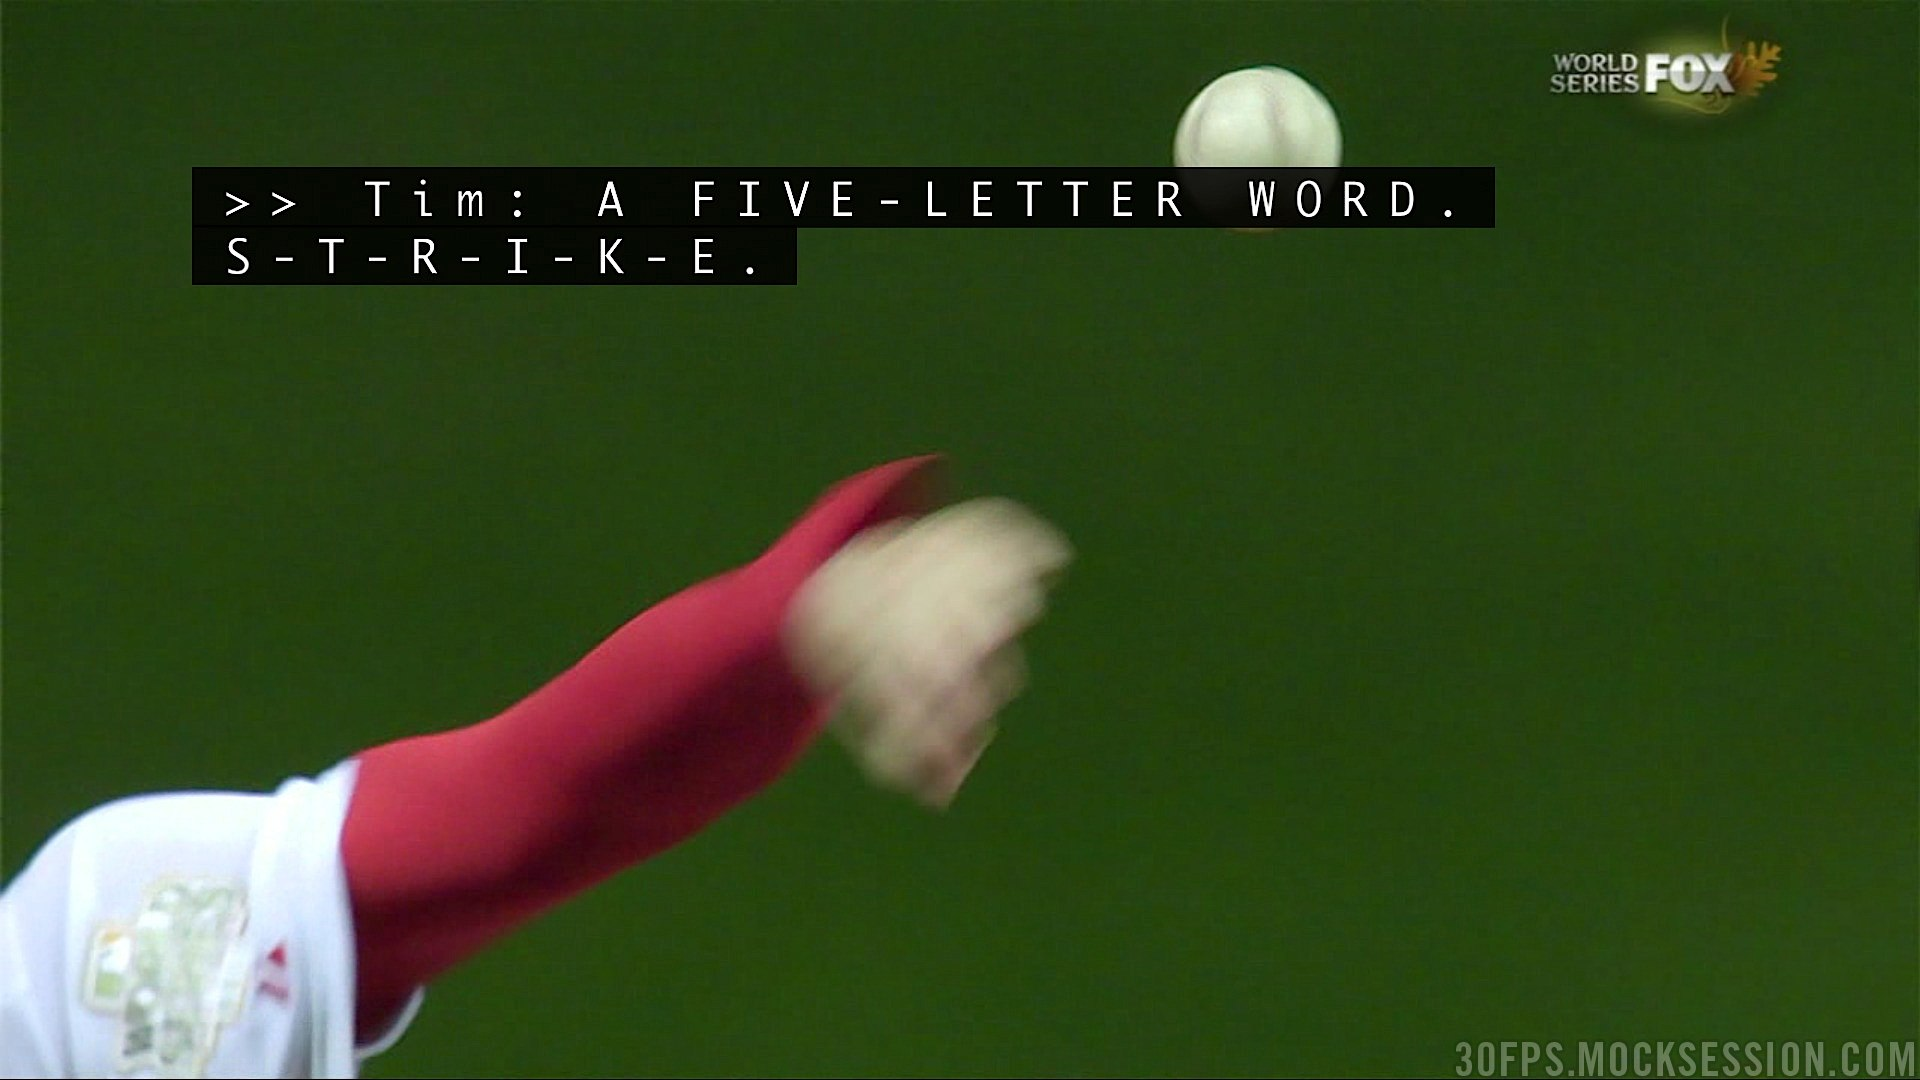 Tim McCarver Calls 'Strike' a 'Five-Letter Word,' Spells It Out During World Series Broadcast